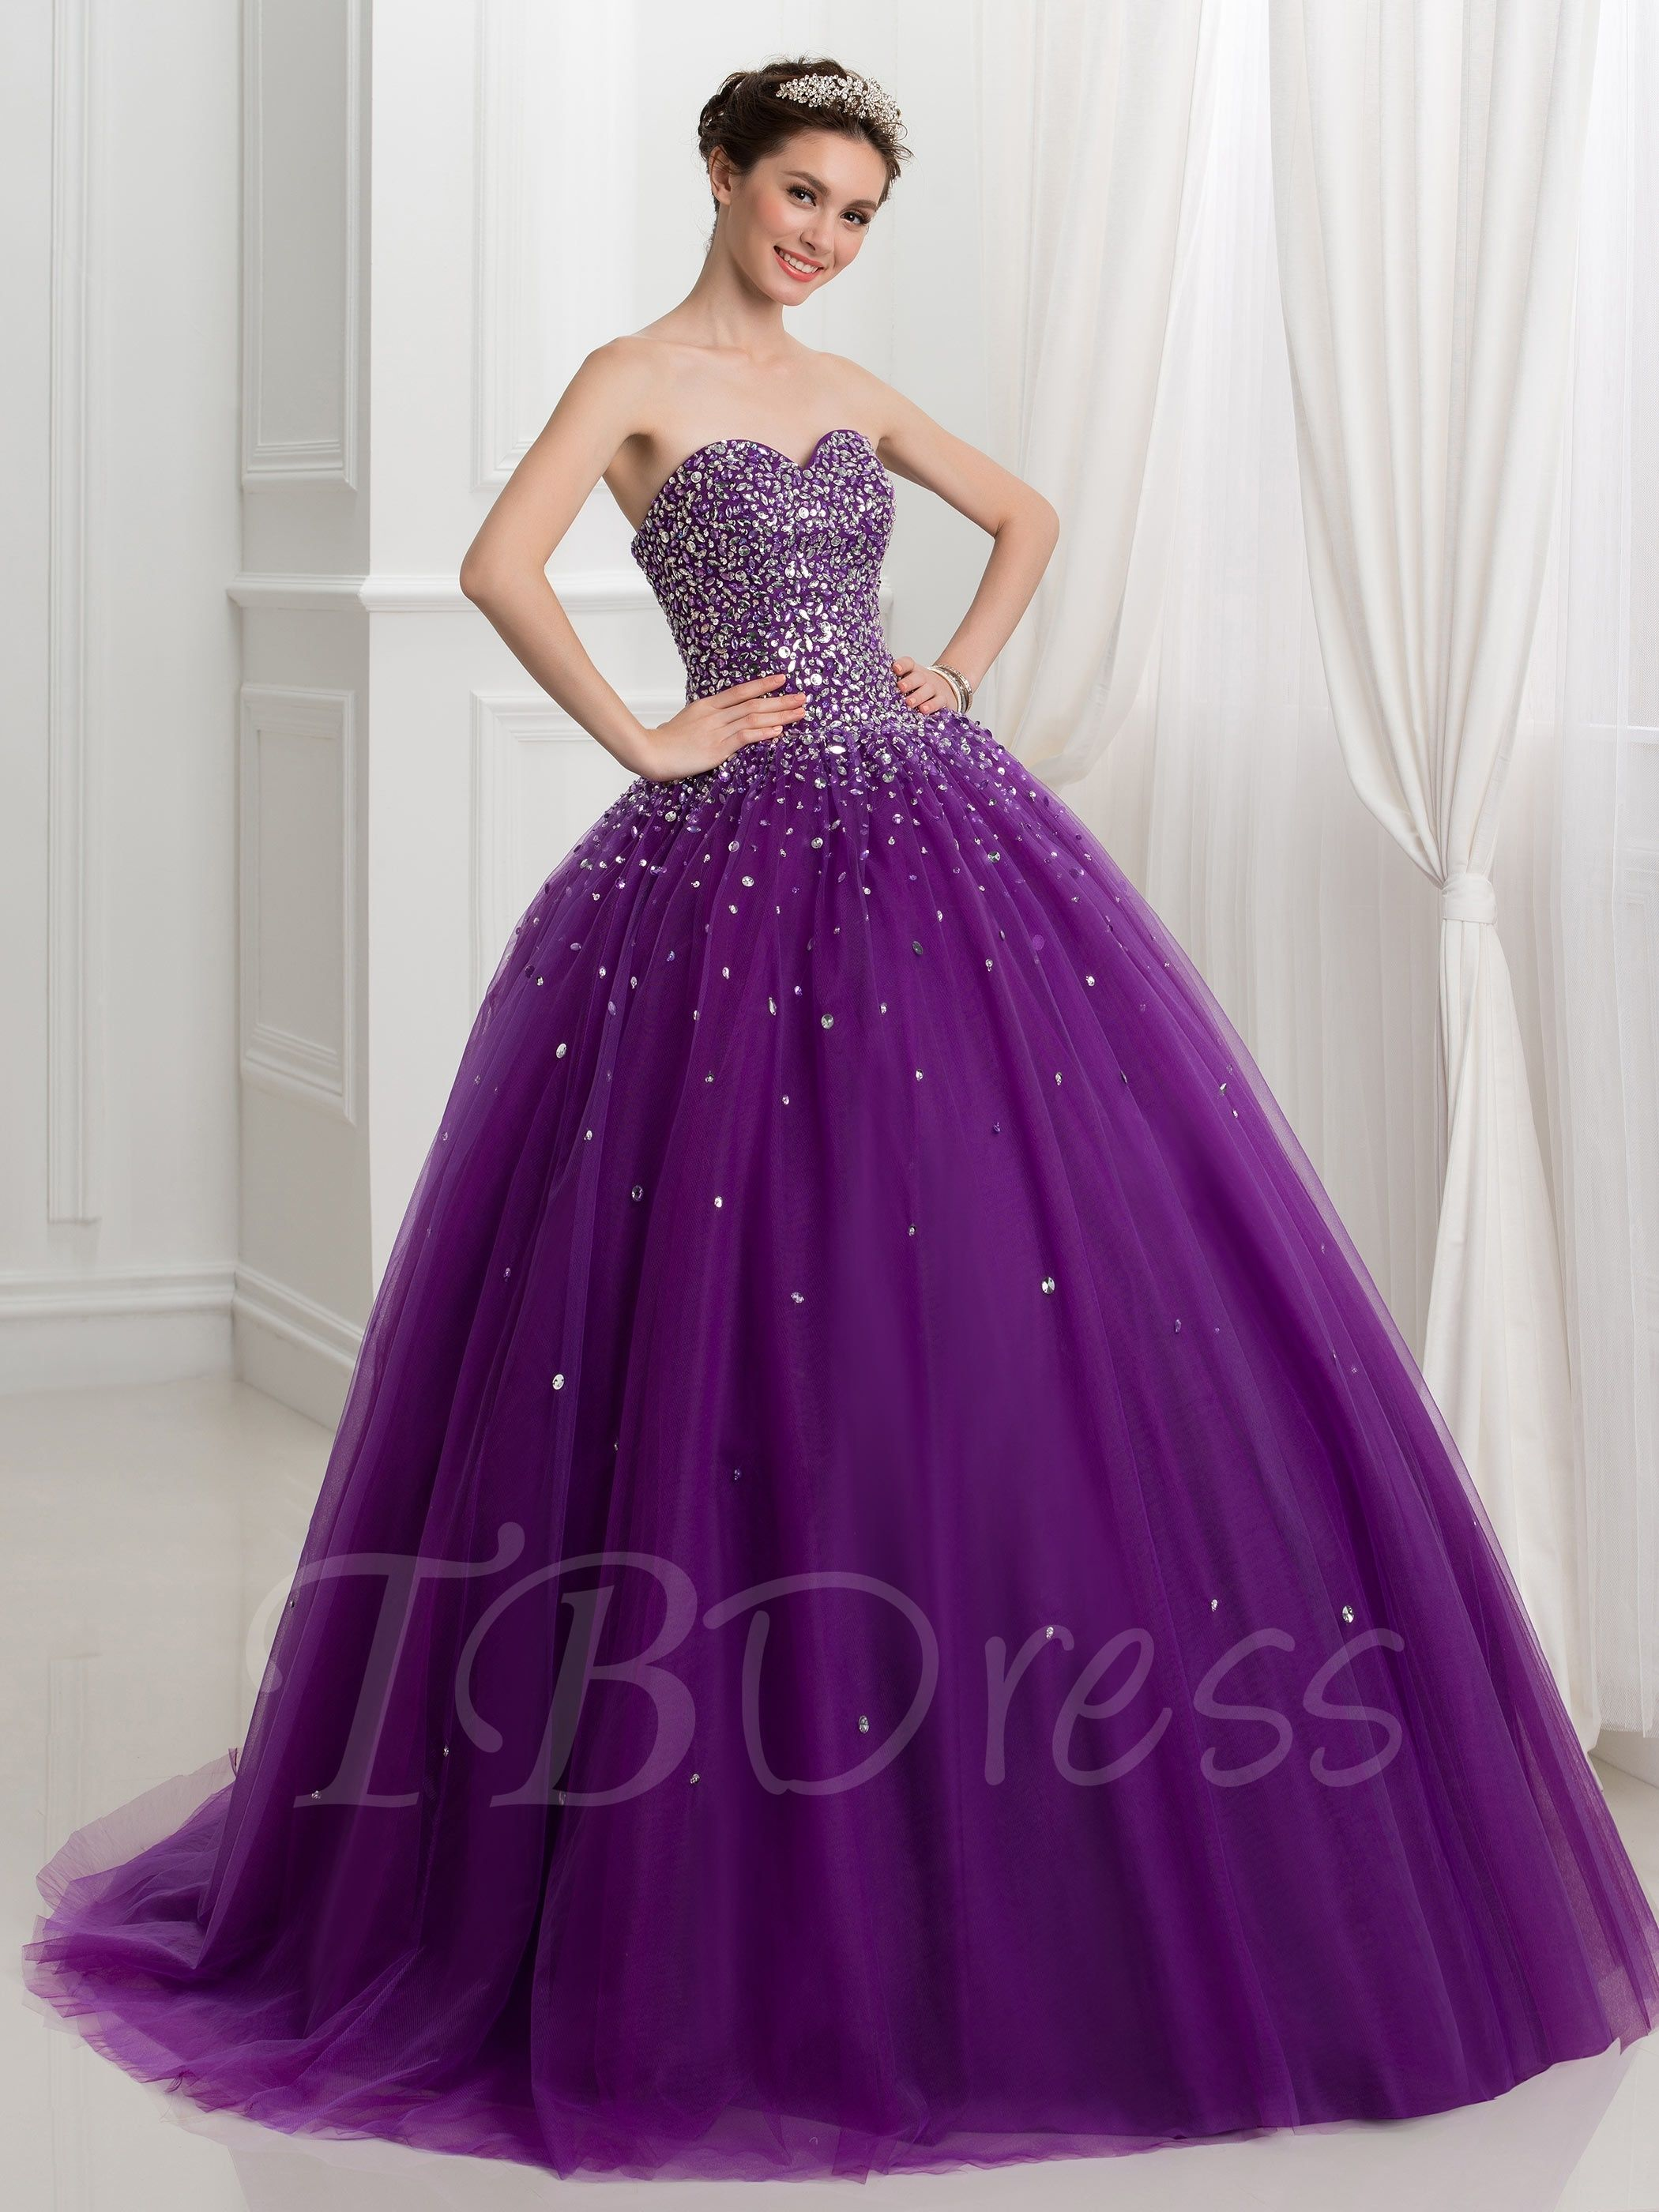 b068e886ed2 Tbdress.com offers high quality Sweetheart Ball Gown Beading Sequins Lace-Up  Quinceanera Dress Ball Gowns unit price of   201.99.